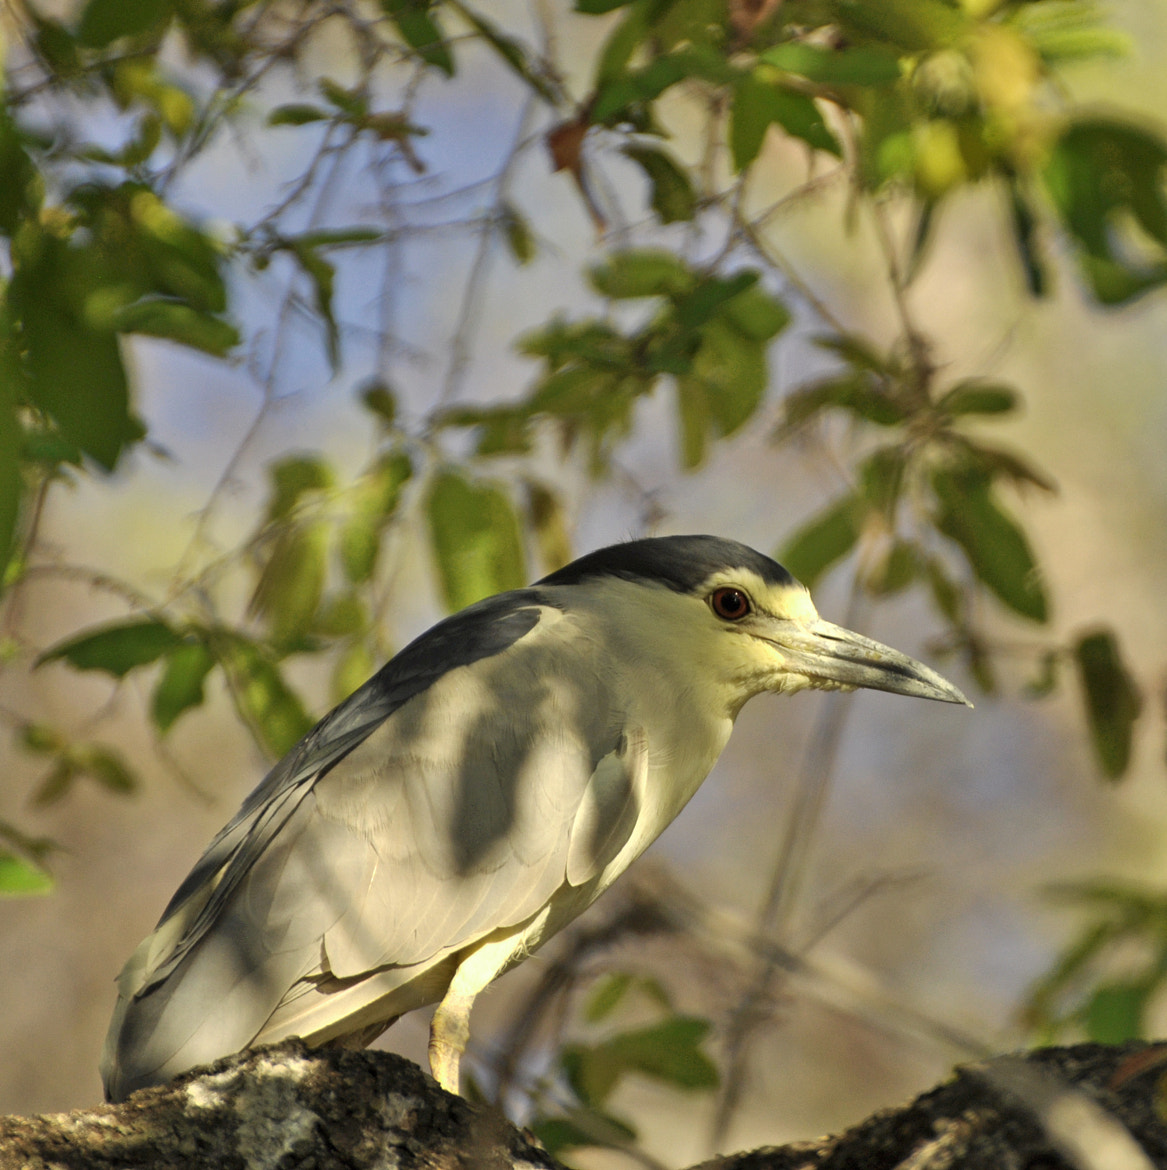 Photograph |Black Crowned Night Heron. by Graham Turner on 500px